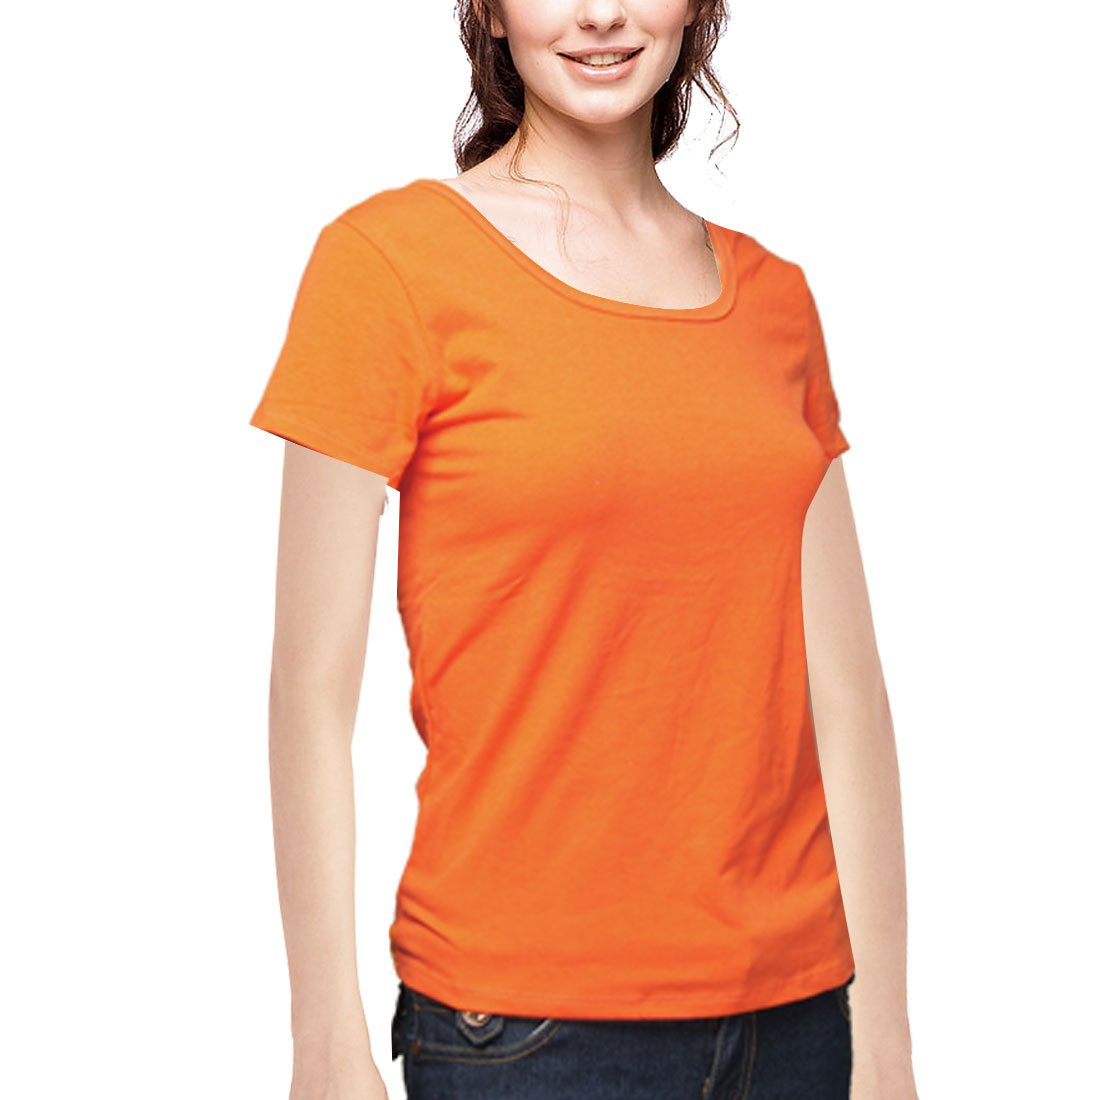 Women Stretchy Short Sleeves U Neck Shirt Top